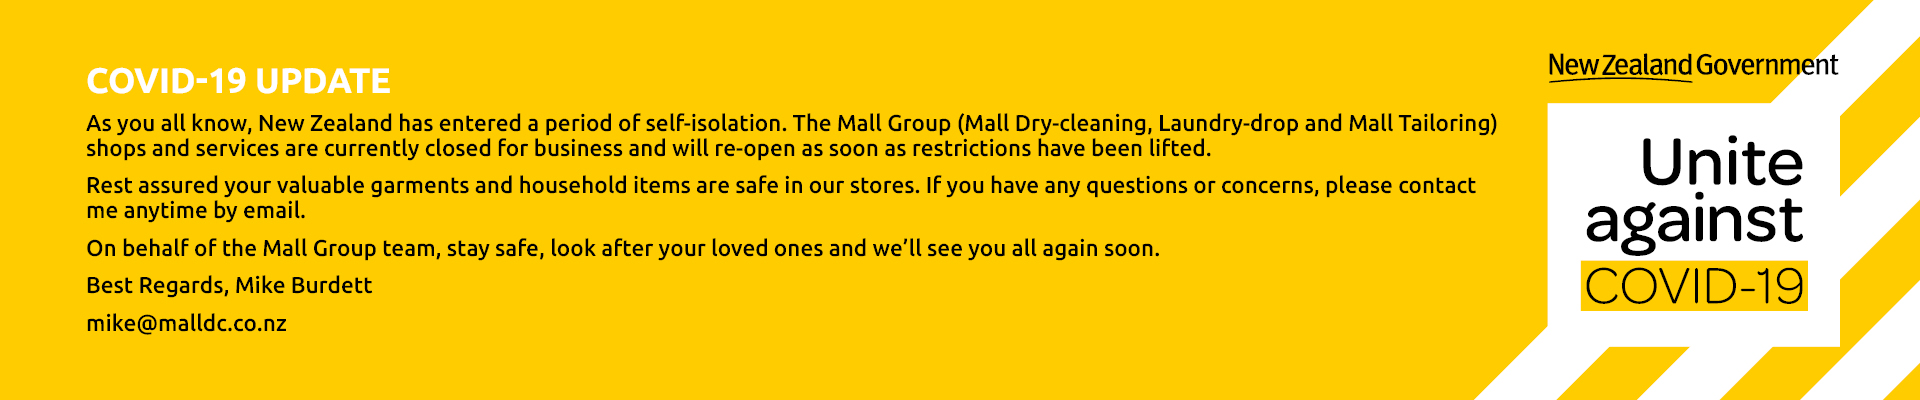 Mall Group Covid-19 Update